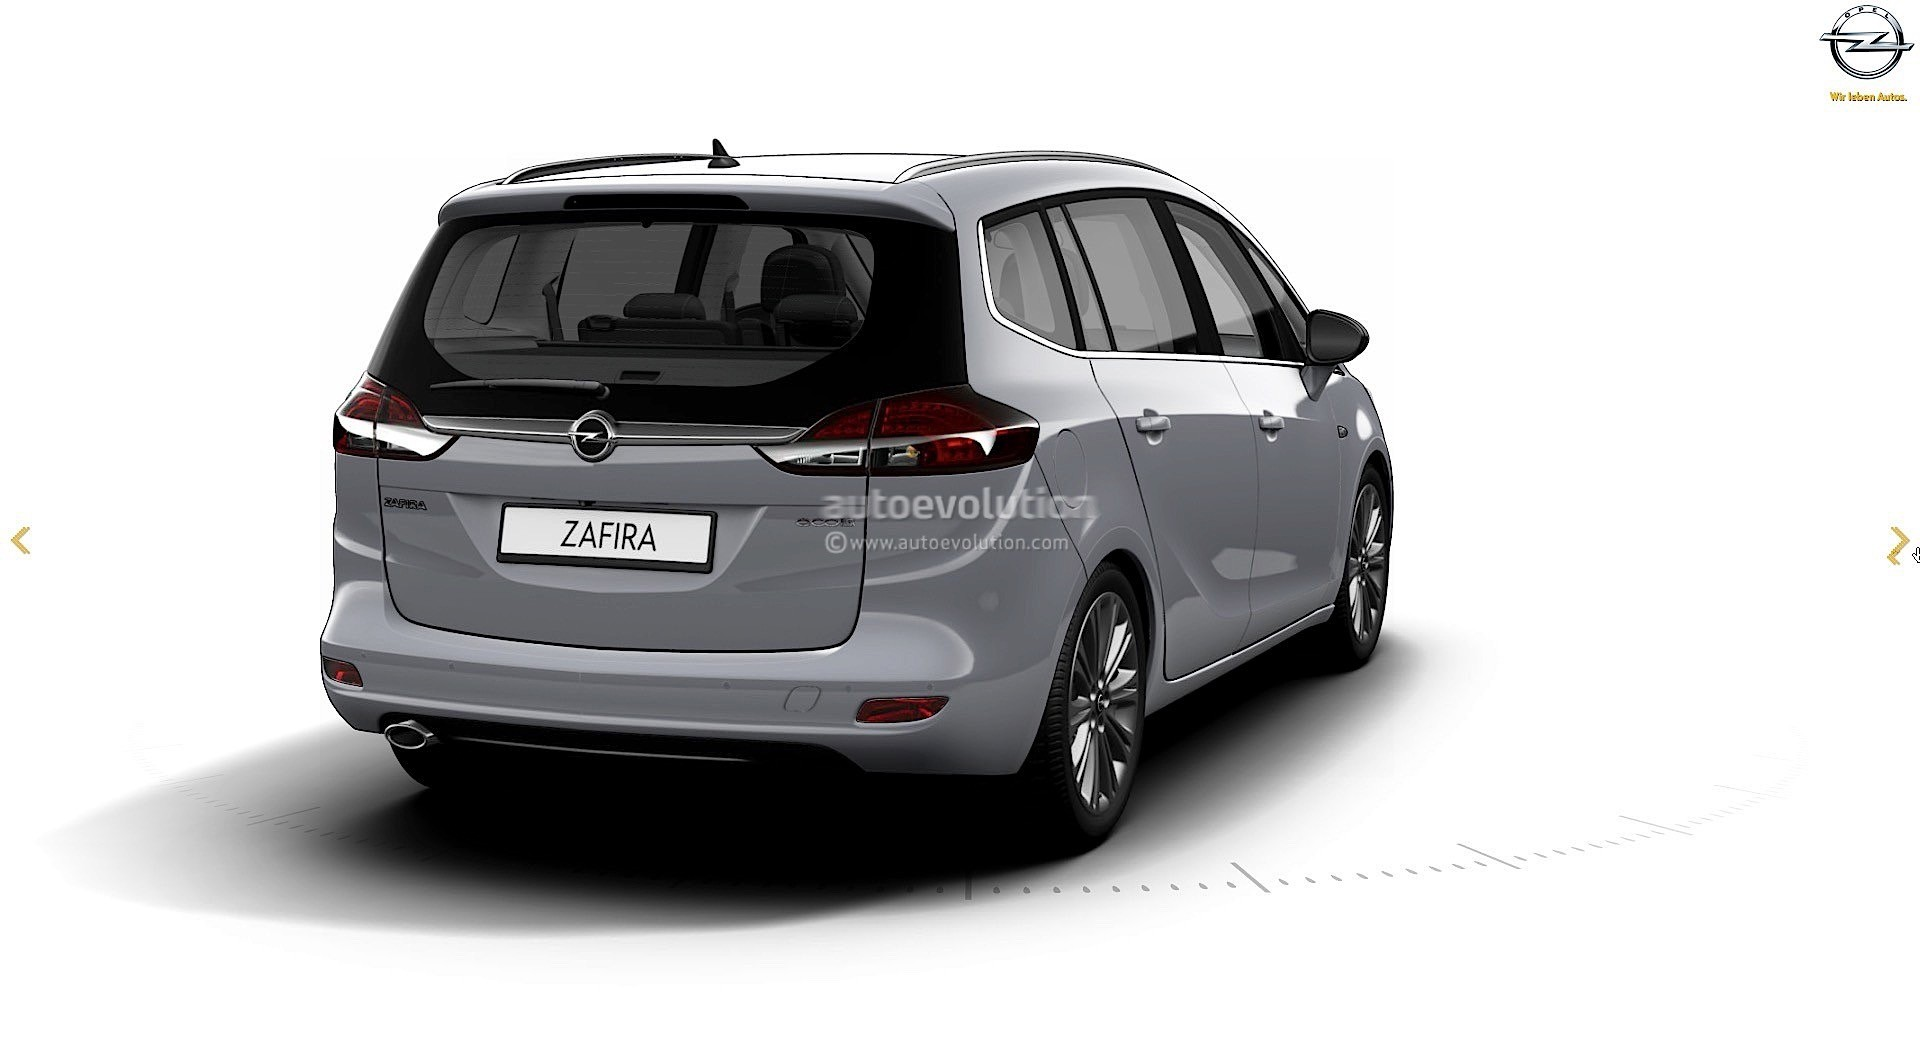 2017 opel zafira facelift leaked on gm website here are the first pics autoevolution. Black Bedroom Furniture Sets. Home Design Ideas